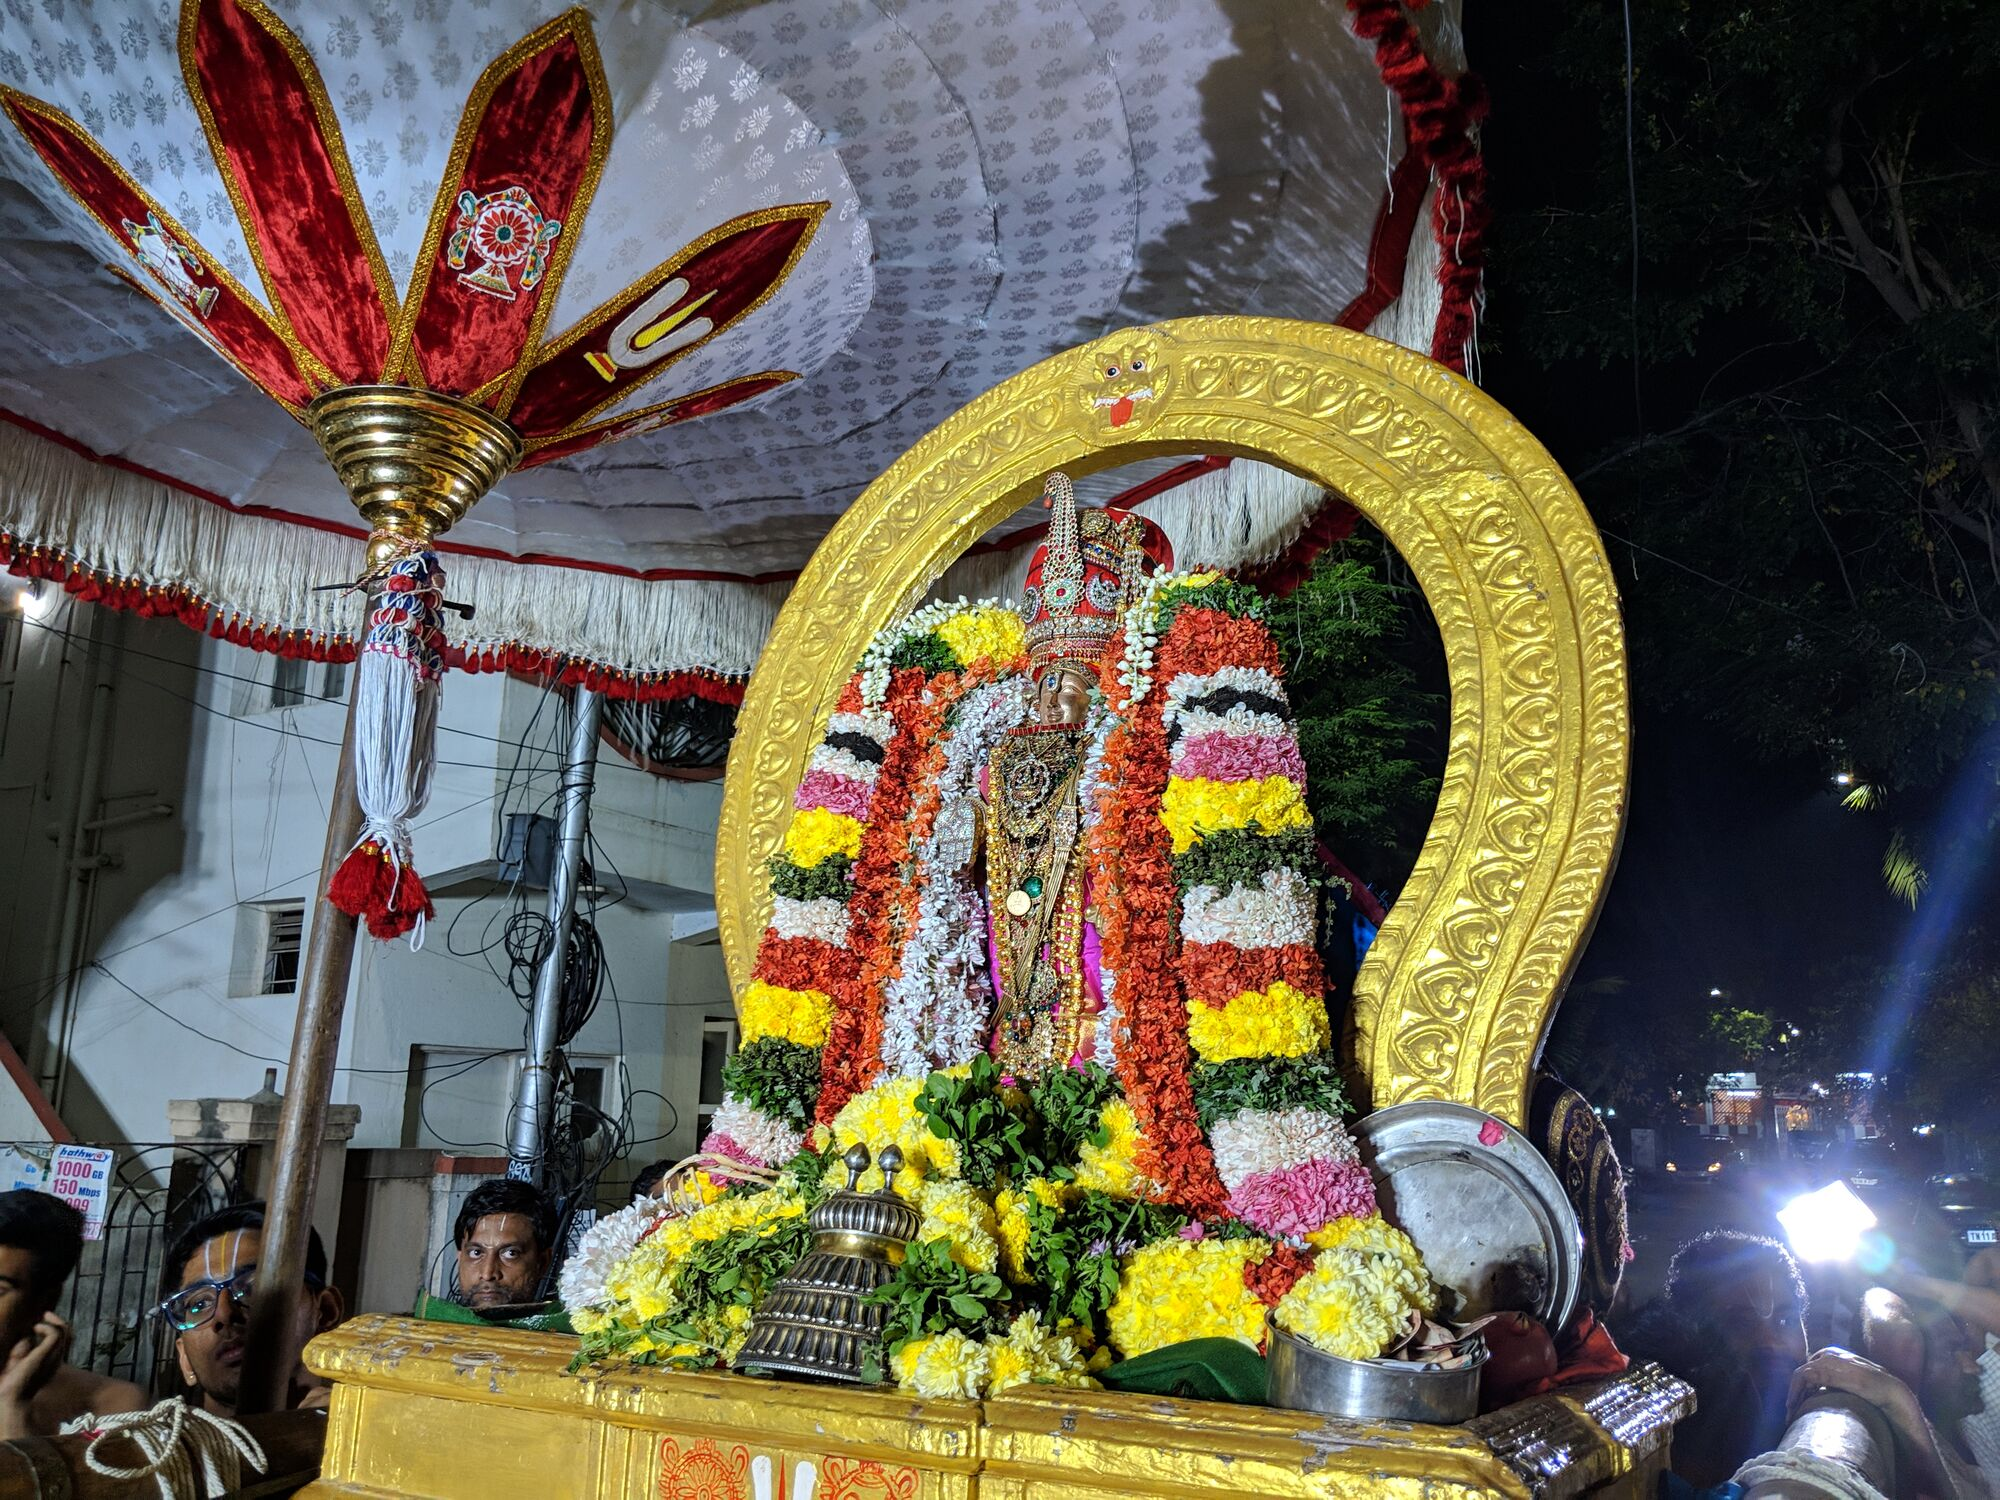 Sri Srinivasa Perumal being carried around in splendour